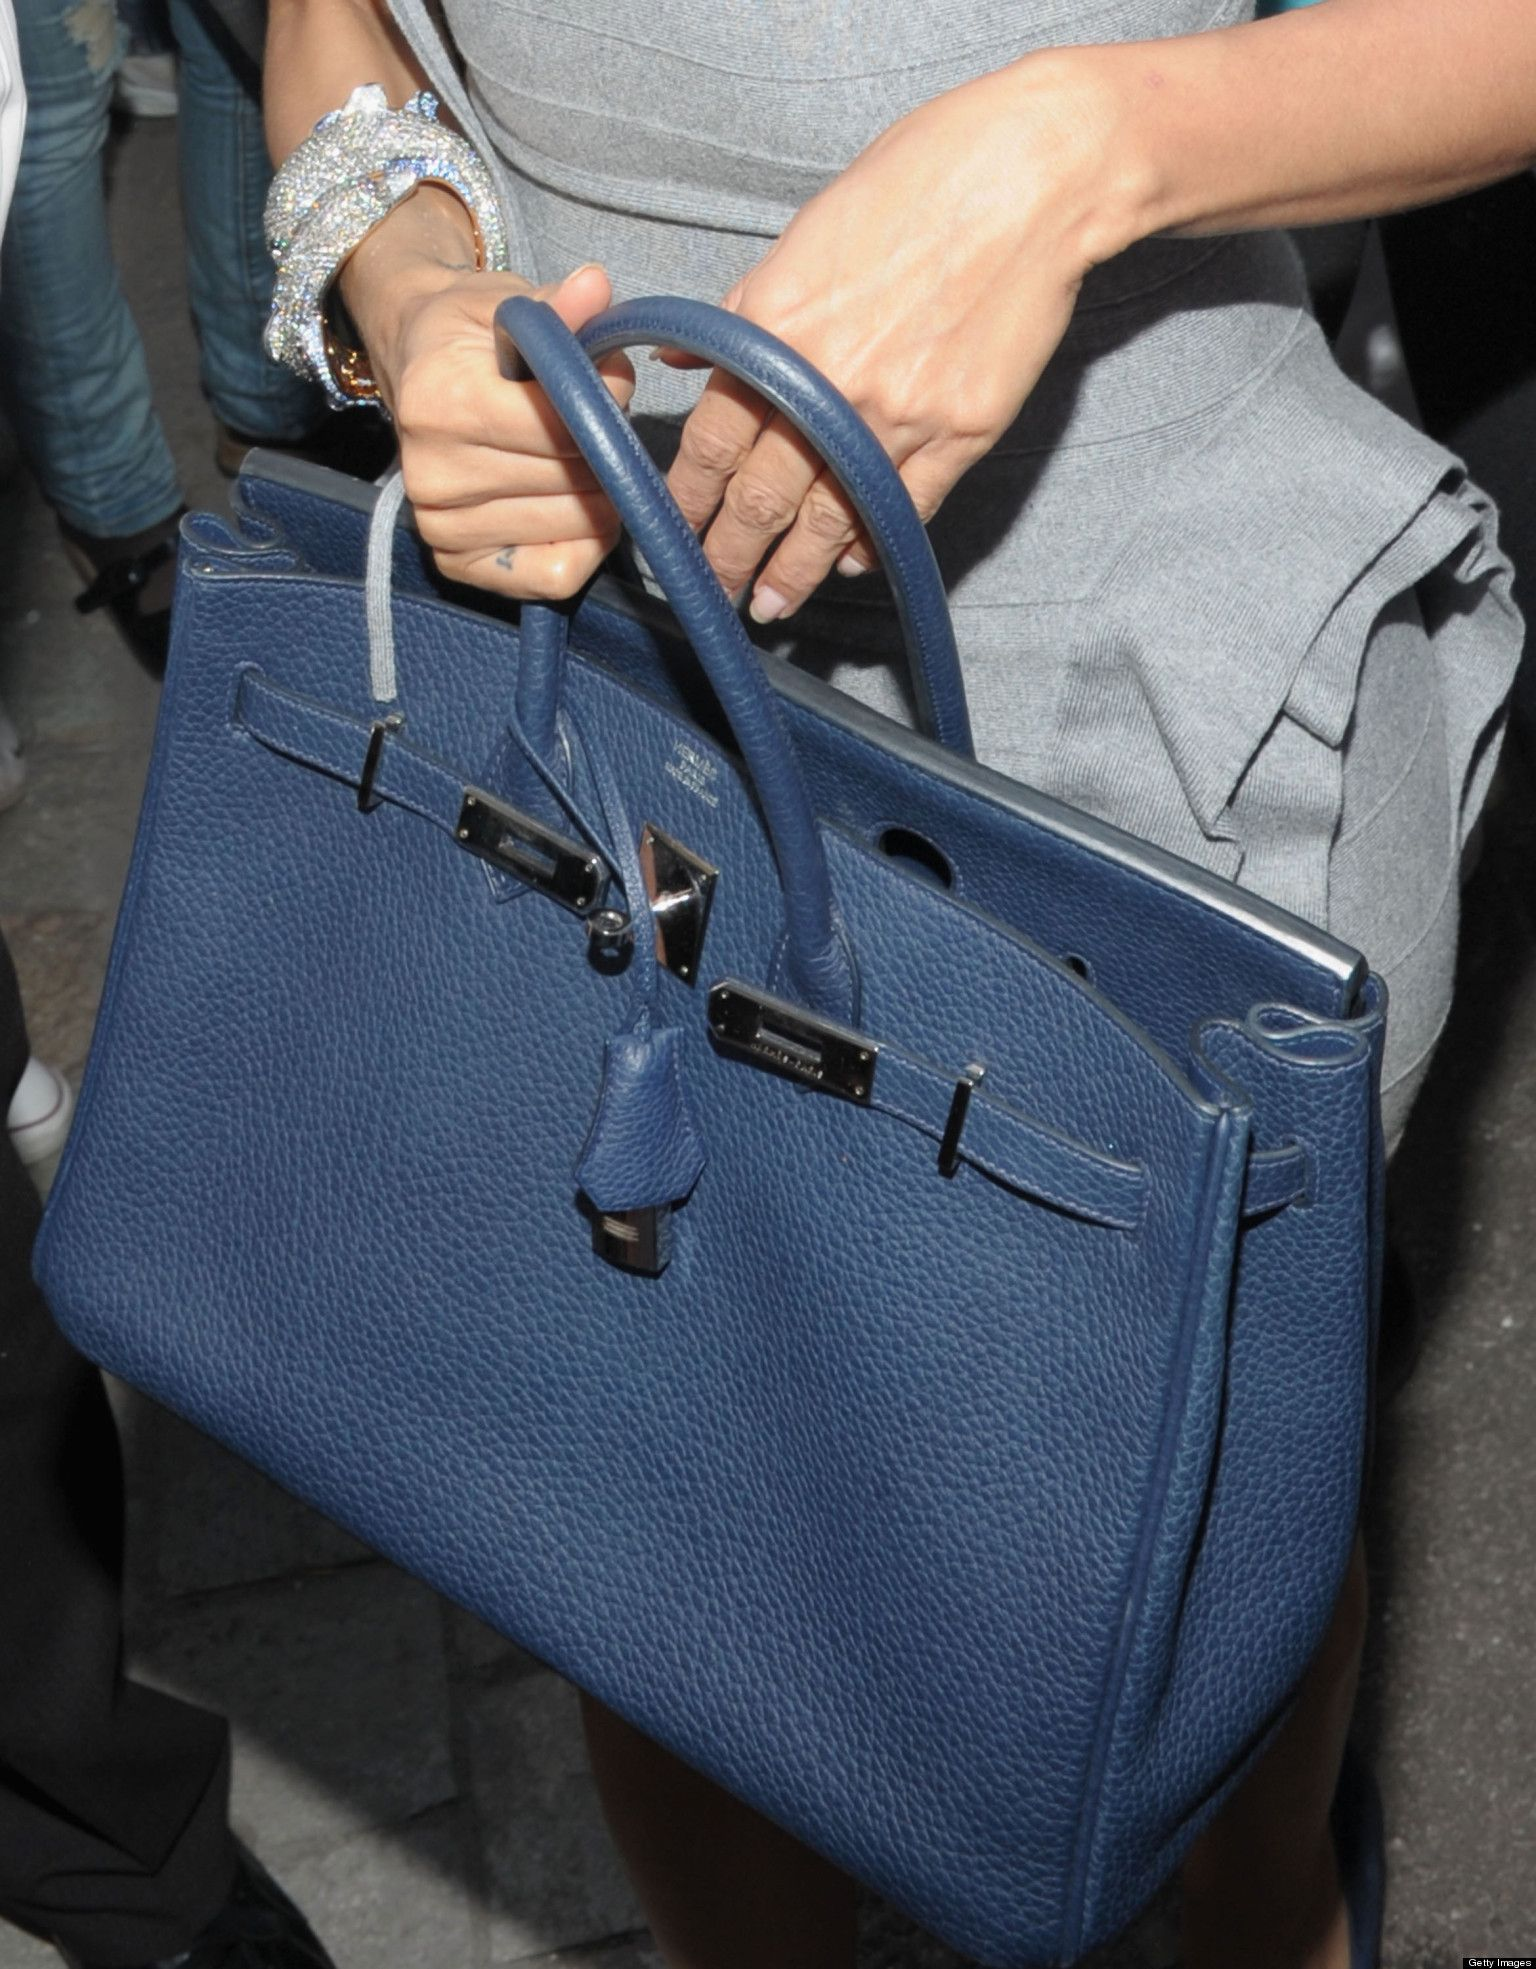 efd2b361823 ... Grace Kelly with the Kelly Bag! Celebrity Handbags - Pictures of  Celebrity Purses - Real Beauty. eva longoria s midnight blue birkin -  gorgeous.